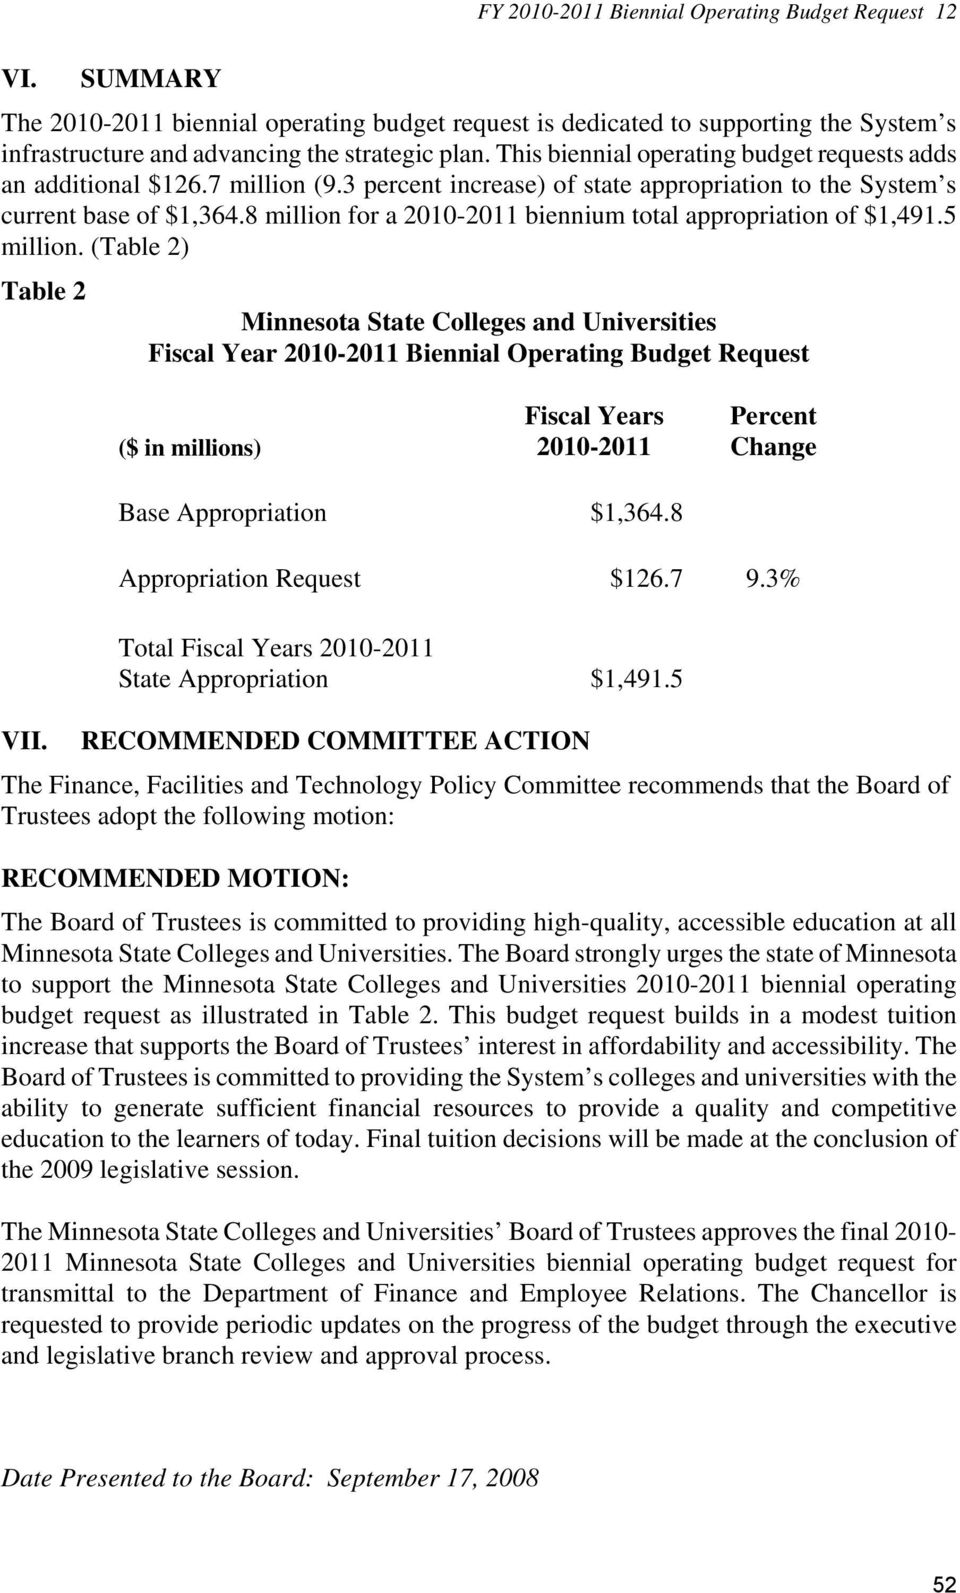 8 million for a 2010-2011 biennium total appropriation of $1,491.5 million.